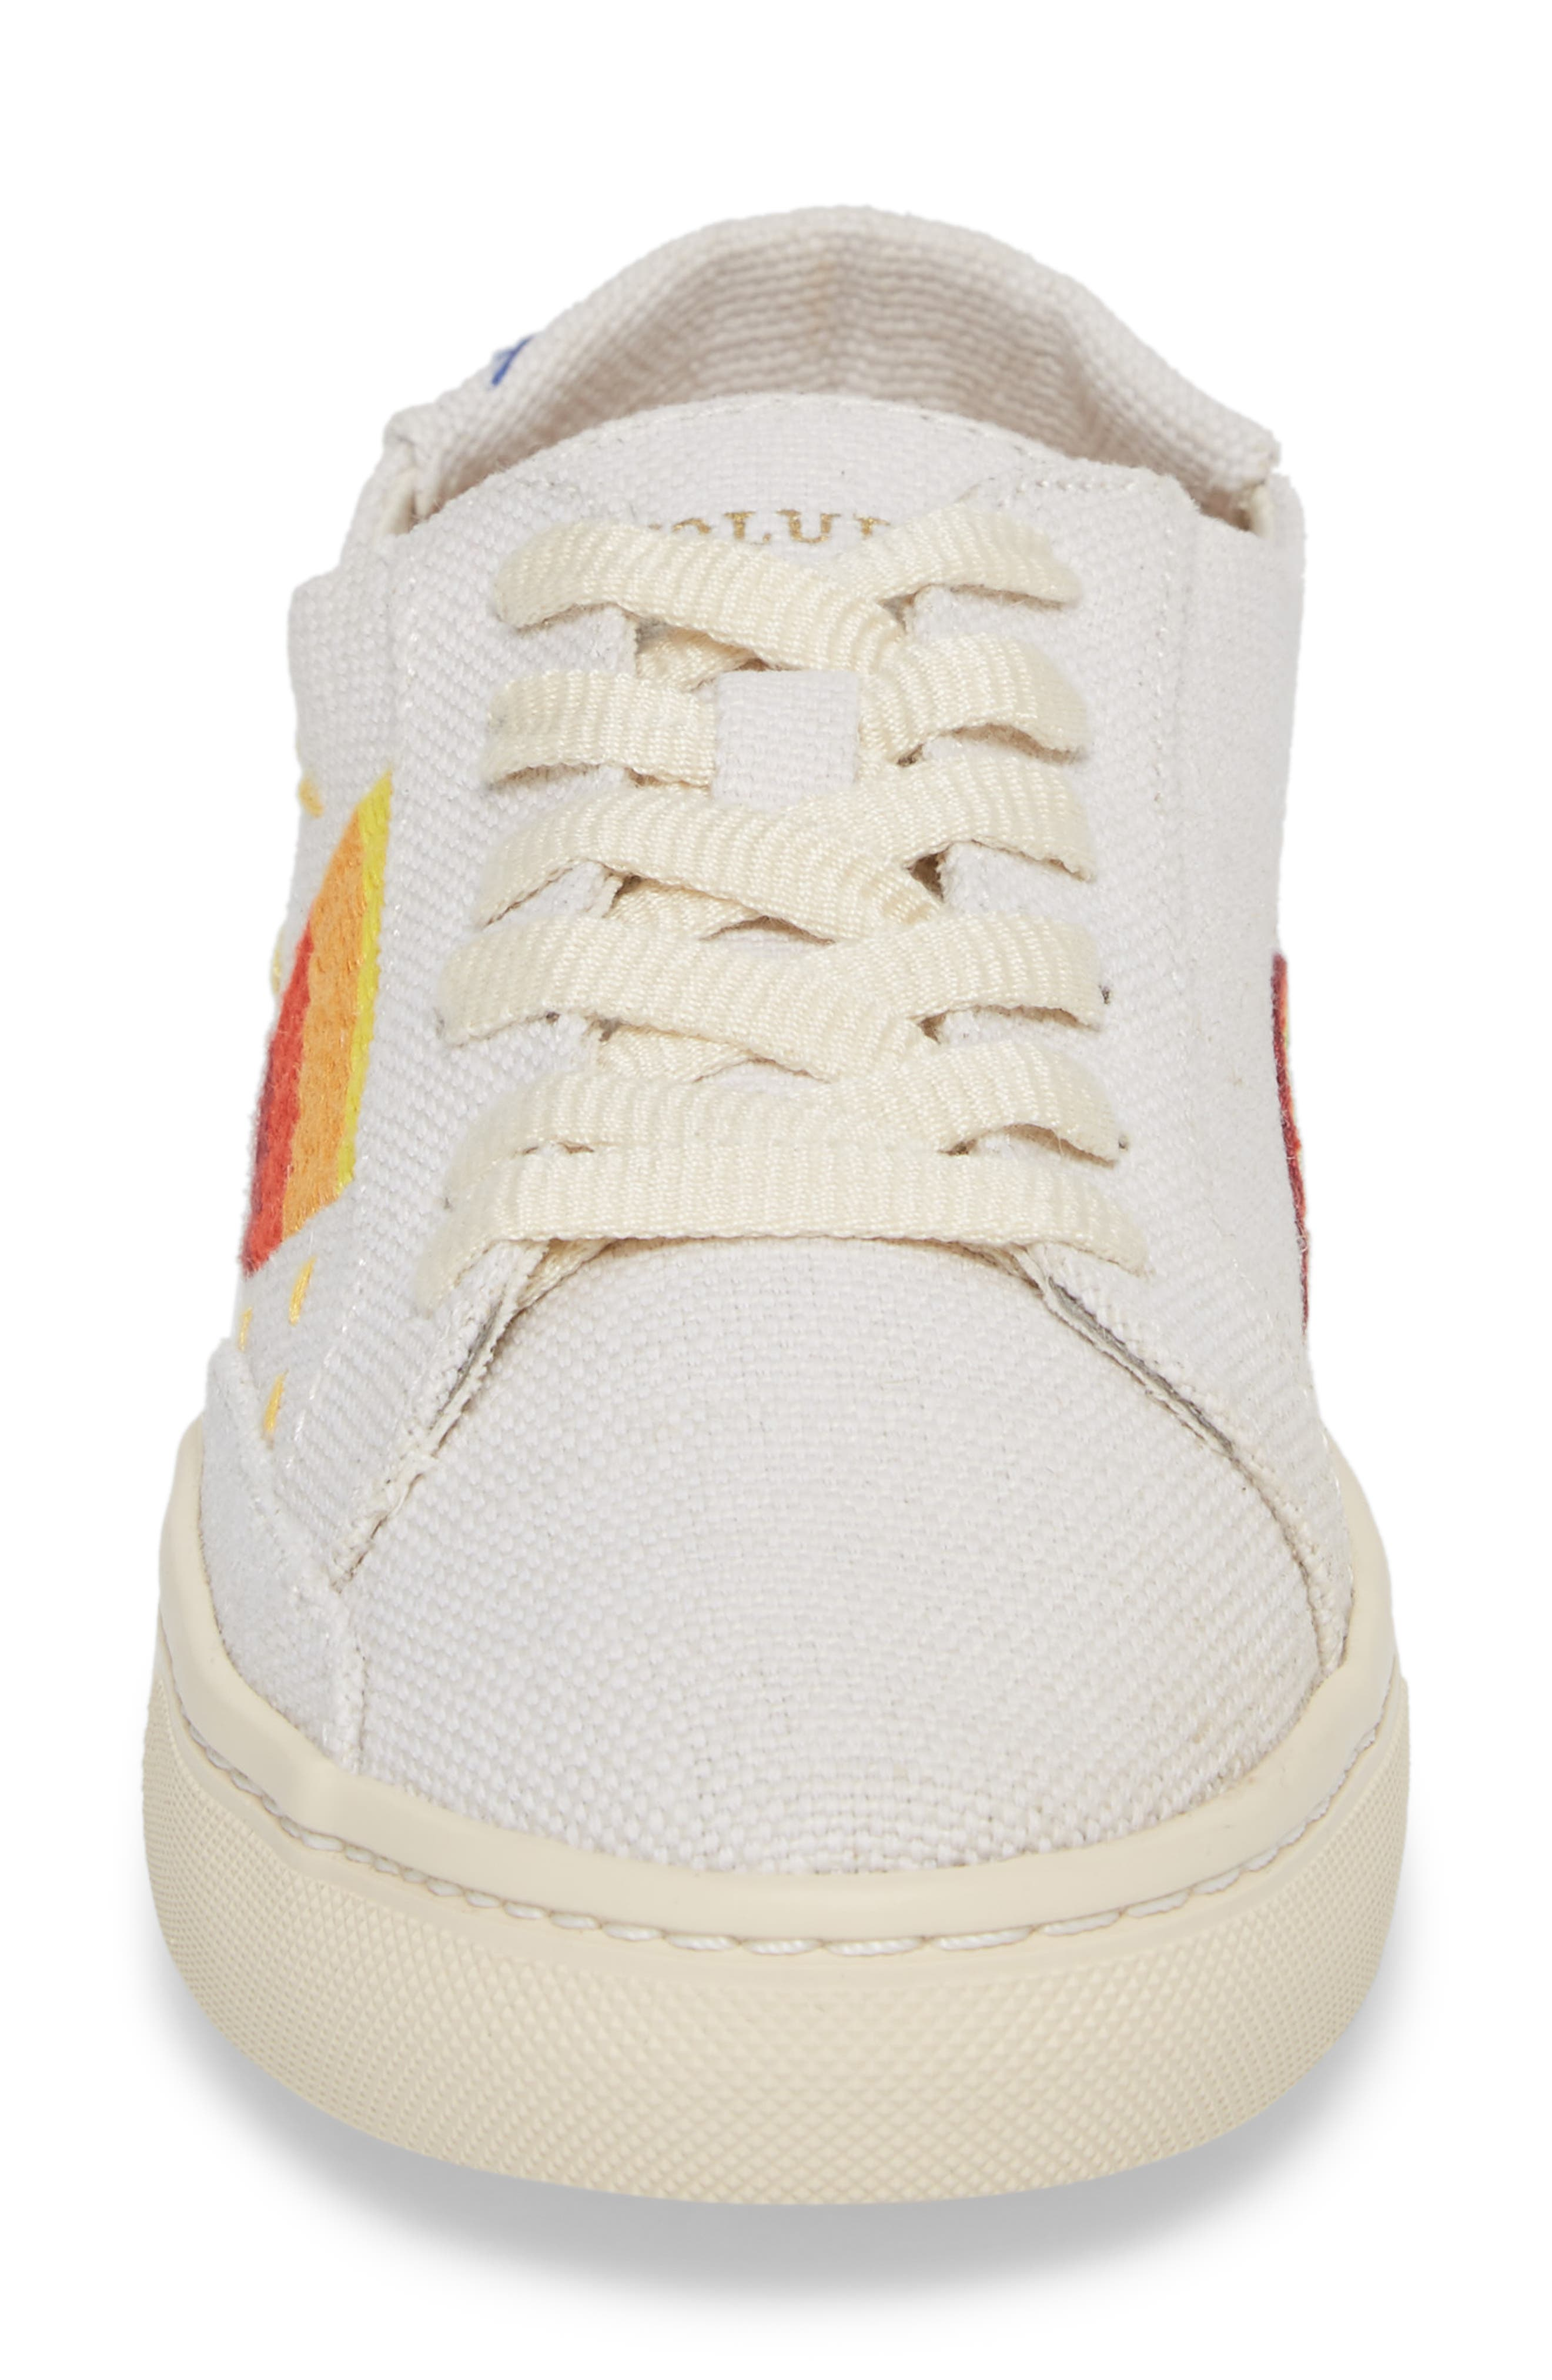 Embroidered Low Top Sneaker,                             Alternate thumbnail 4, color,                             White Canvas